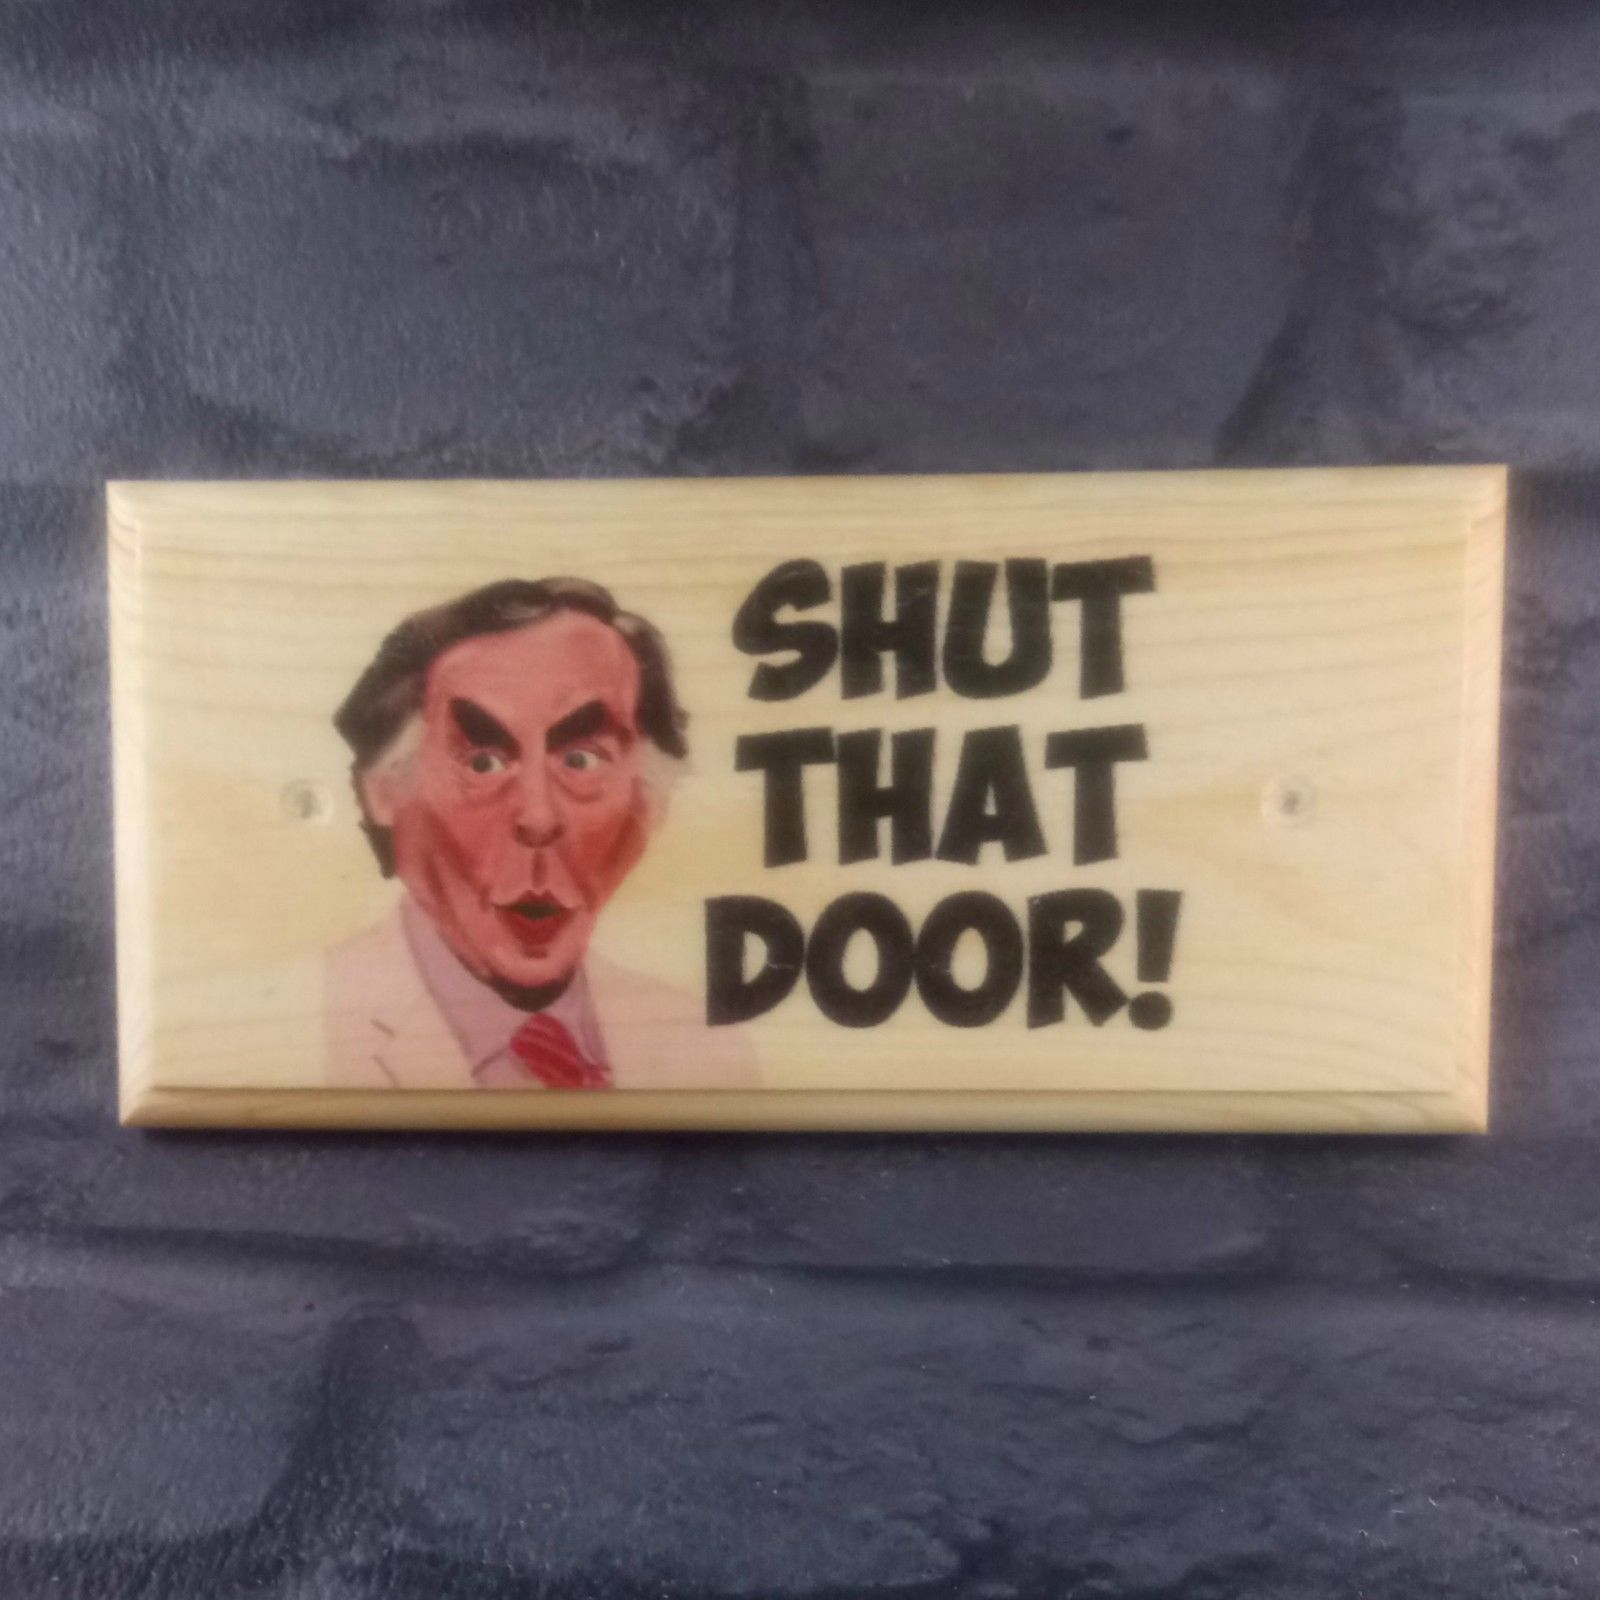 Primary image for Shut That Door Sign, Larry Grayson Gift Shut The Door Plaque Close Gate Shed 223